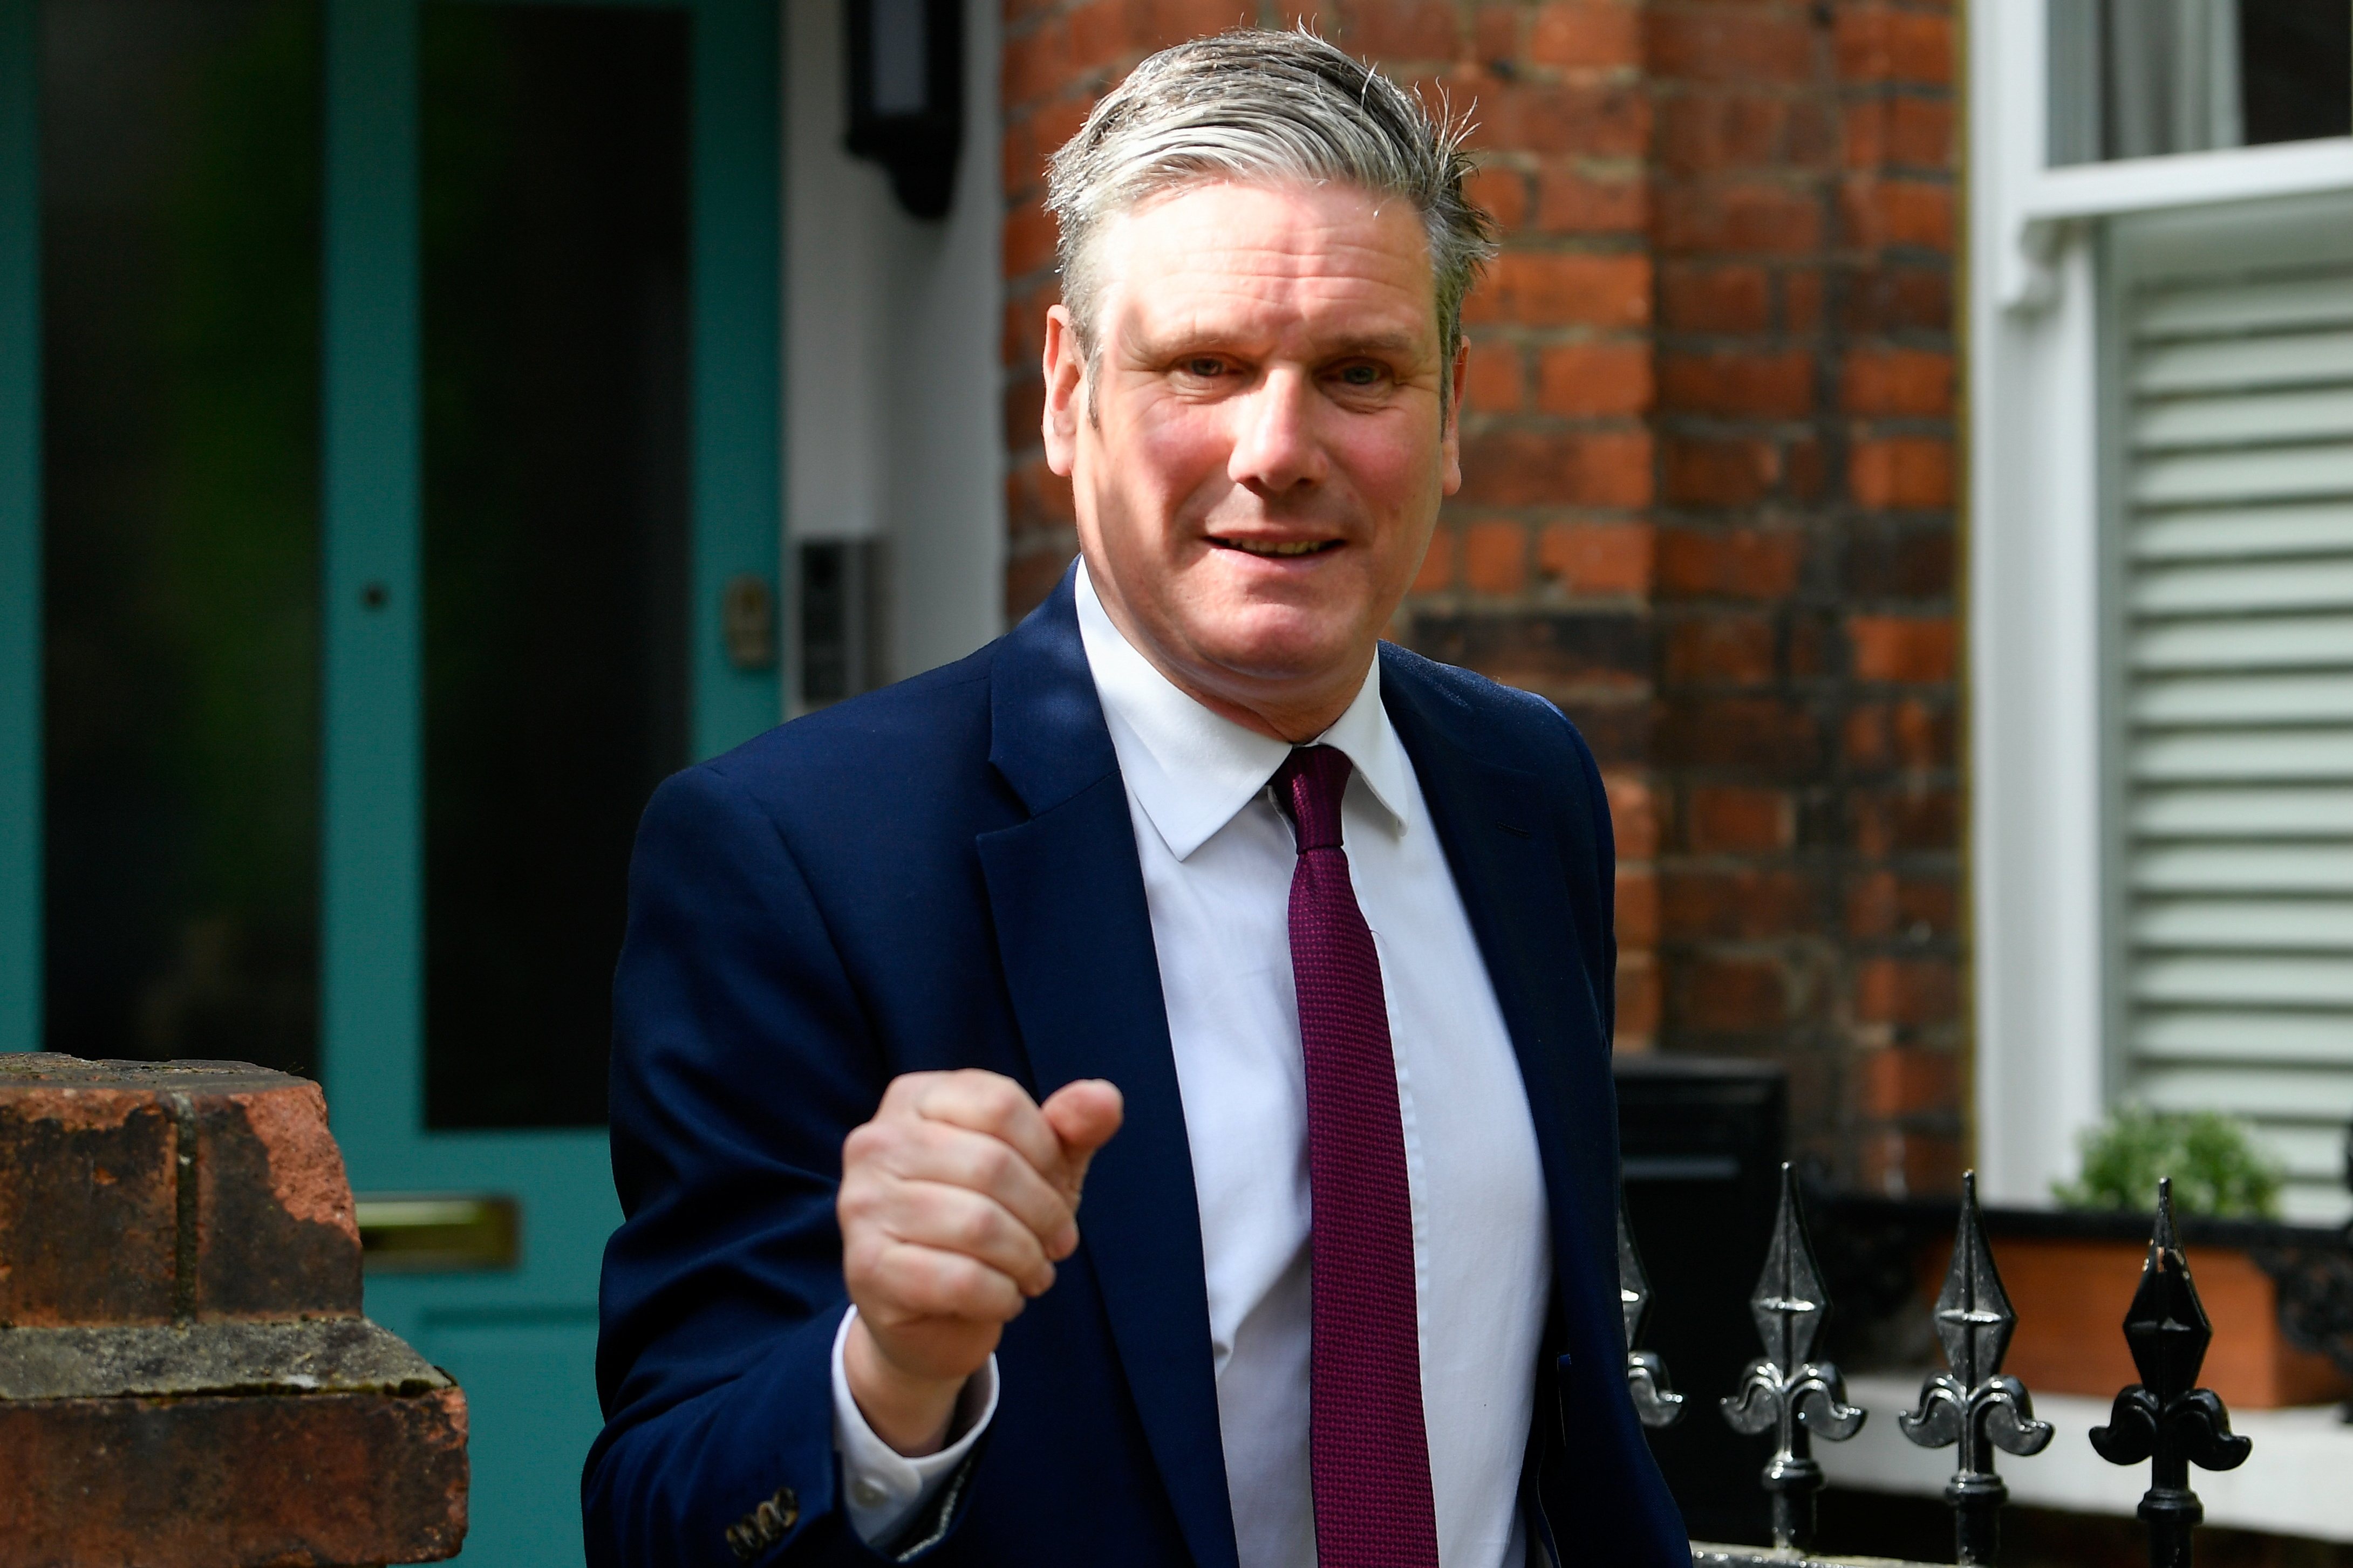 Britain's Labour Party leader, Keir Starmer leaves his home in London, Britain May 10, 2021. REUTERS/Toby Melville